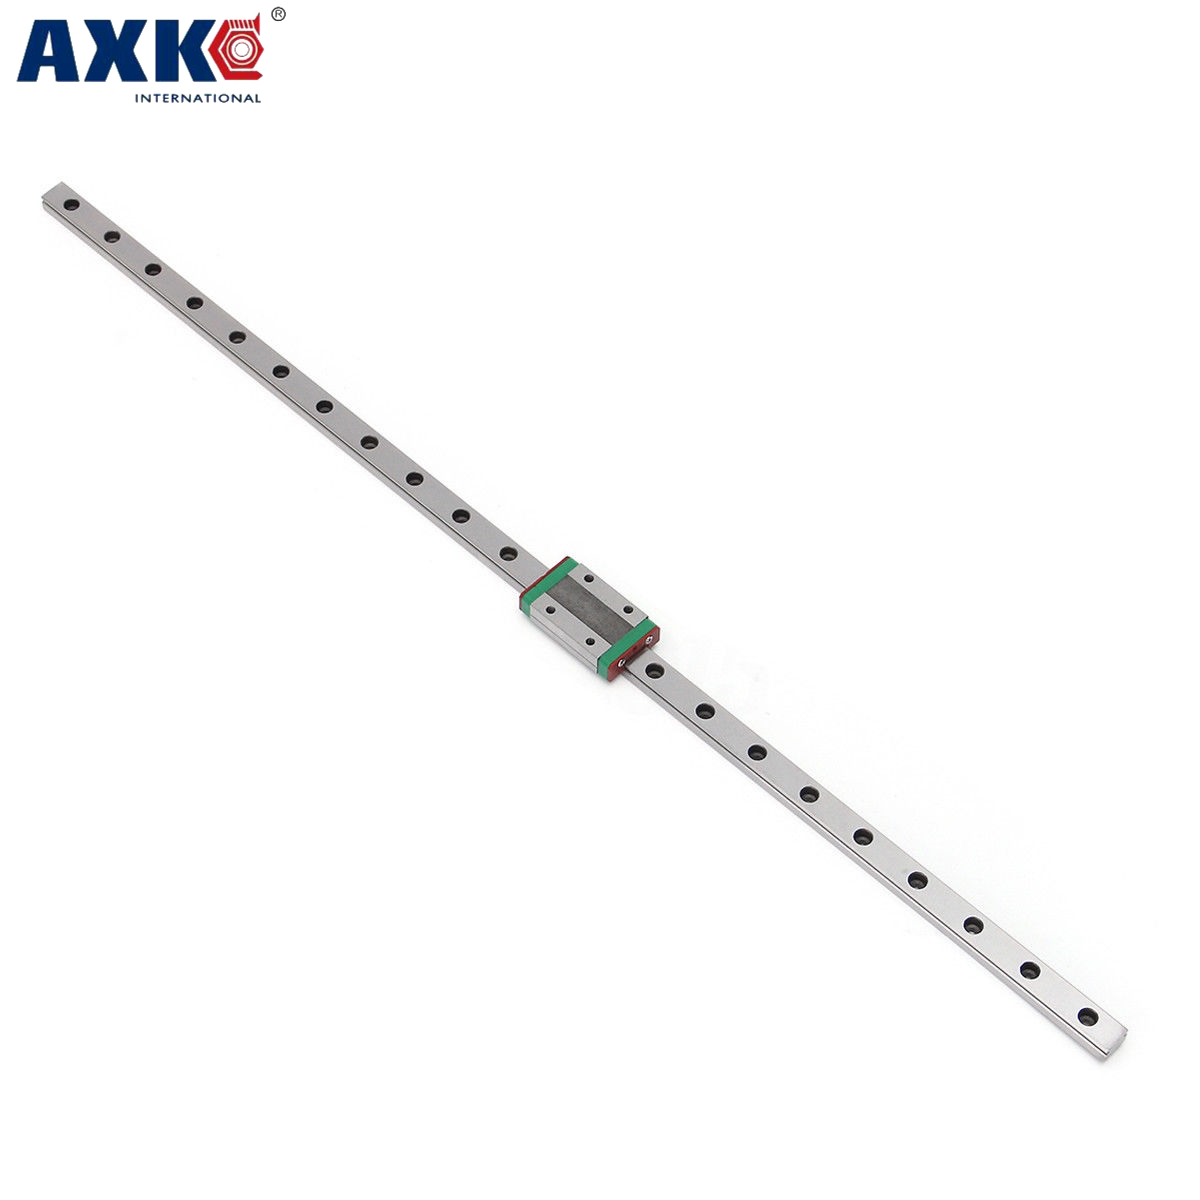 AXK CNC MR12 12mm linear guide NEW  technology   MGN12-L-350mm with MGN12C linear block with nigrescence the surface treatment<br>